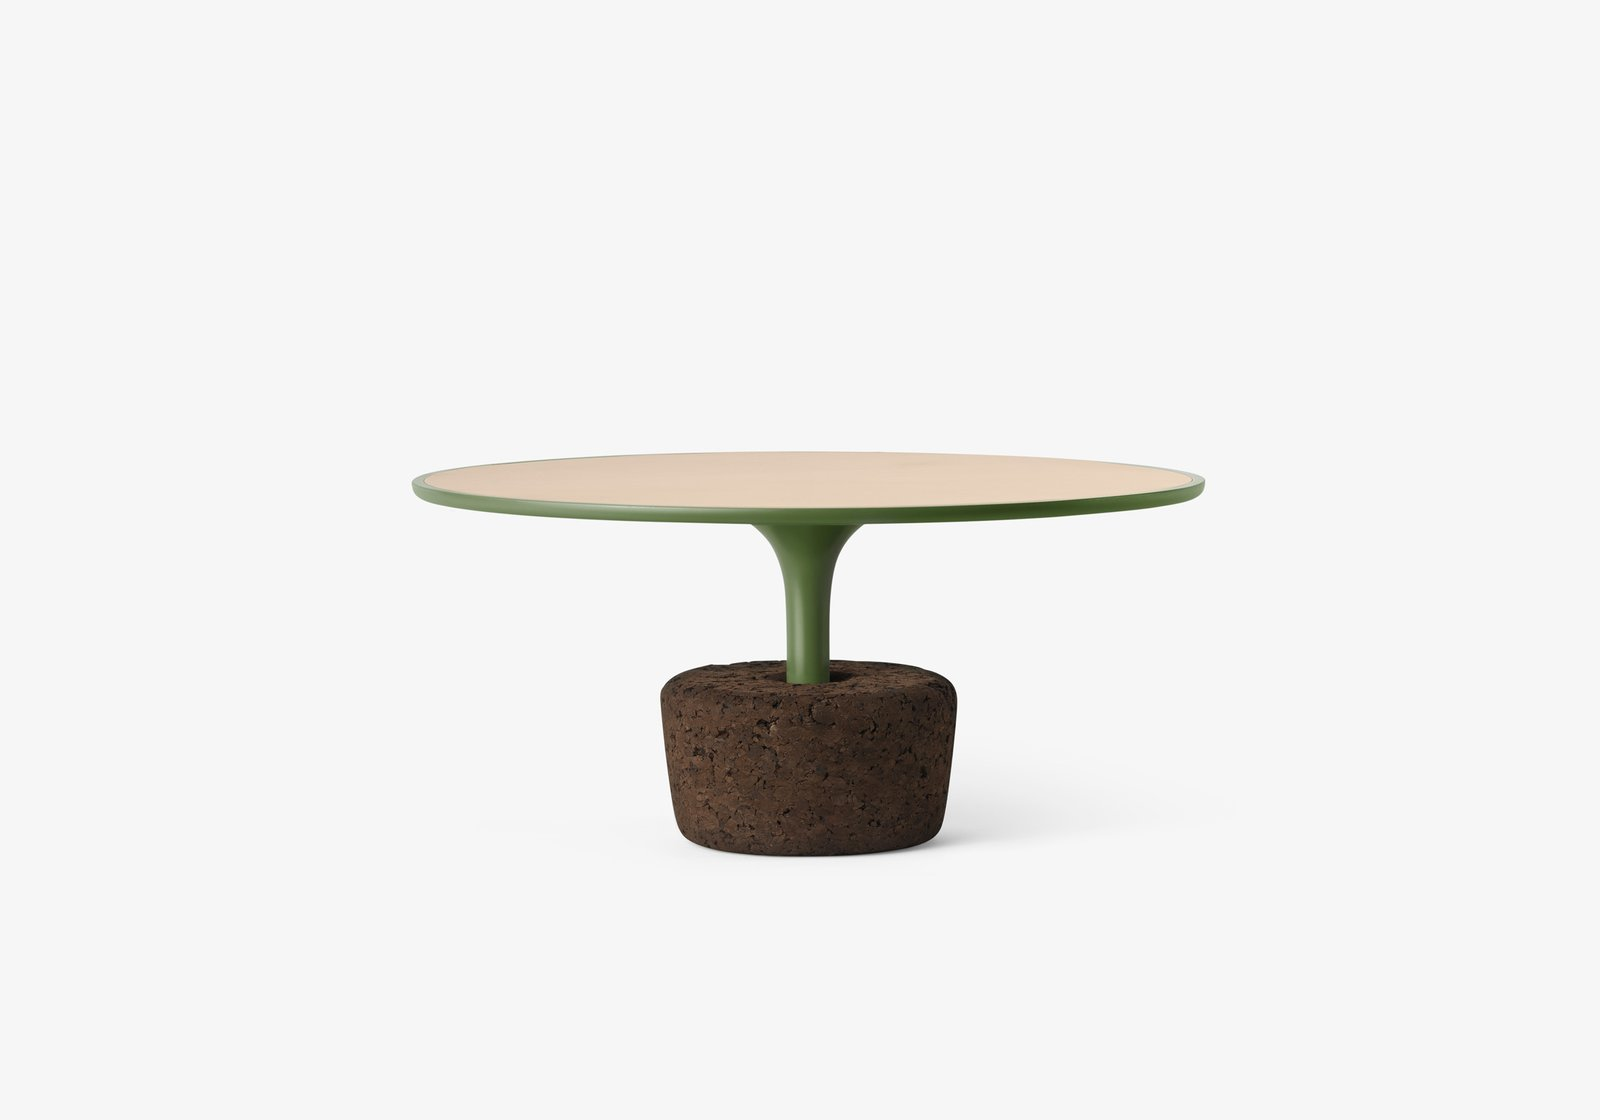 "Flora Wide Low  FLORA is a set of coffee tables that refers to the plants we offer to the ones we love, so there is a similarity between taking care of plants and taking care of the objects. These versatile tables combine natural materials, with four sizes and six different colored frame finishes and may be used separately or together.  Size  Ø65 x H30 cm / Ø25,6'' x H11,8''.  Weight  5,7 kg / 12,6 lbs.   Search ""기흥출장안마【Ø1Ø↔3Ø67↔661Ø】⊀후불제⊁기흥출장마사지 기흥콜걸출장안마후기【20대맞춤】기흥콜걸출장마사지 기흥출장샵강추 기흥모텔출장美人기흥출장맛사지후기∠기흥출장안마추천후기 기흥출장여대생"" from Floras"